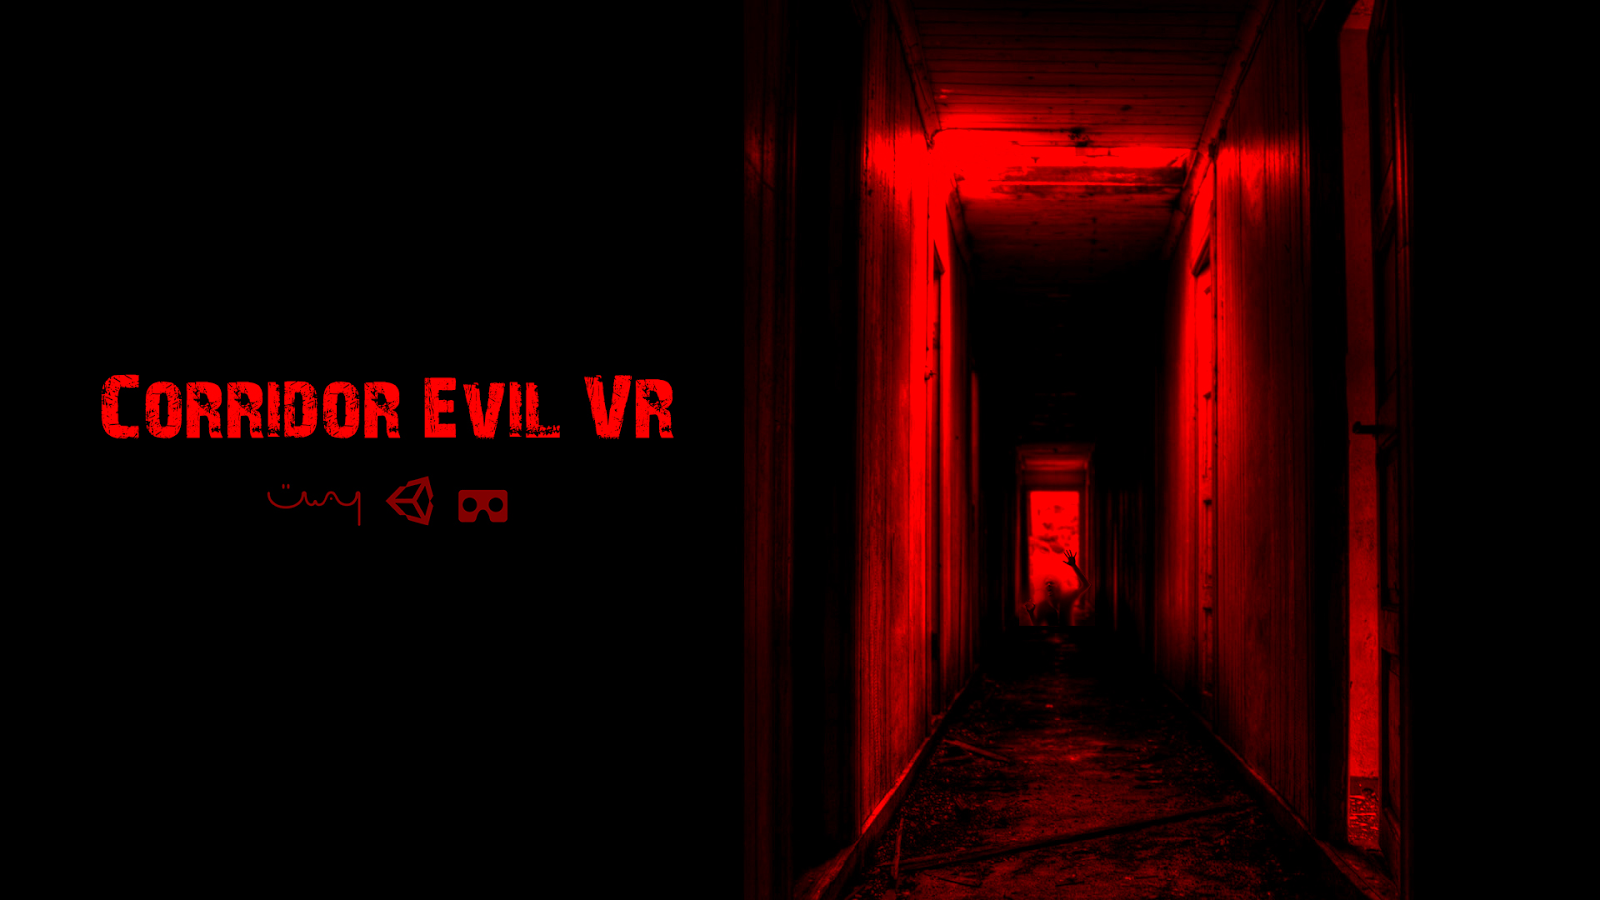 Corridor evil vr android apps on google play corridor evil vr screenshot sciox Images